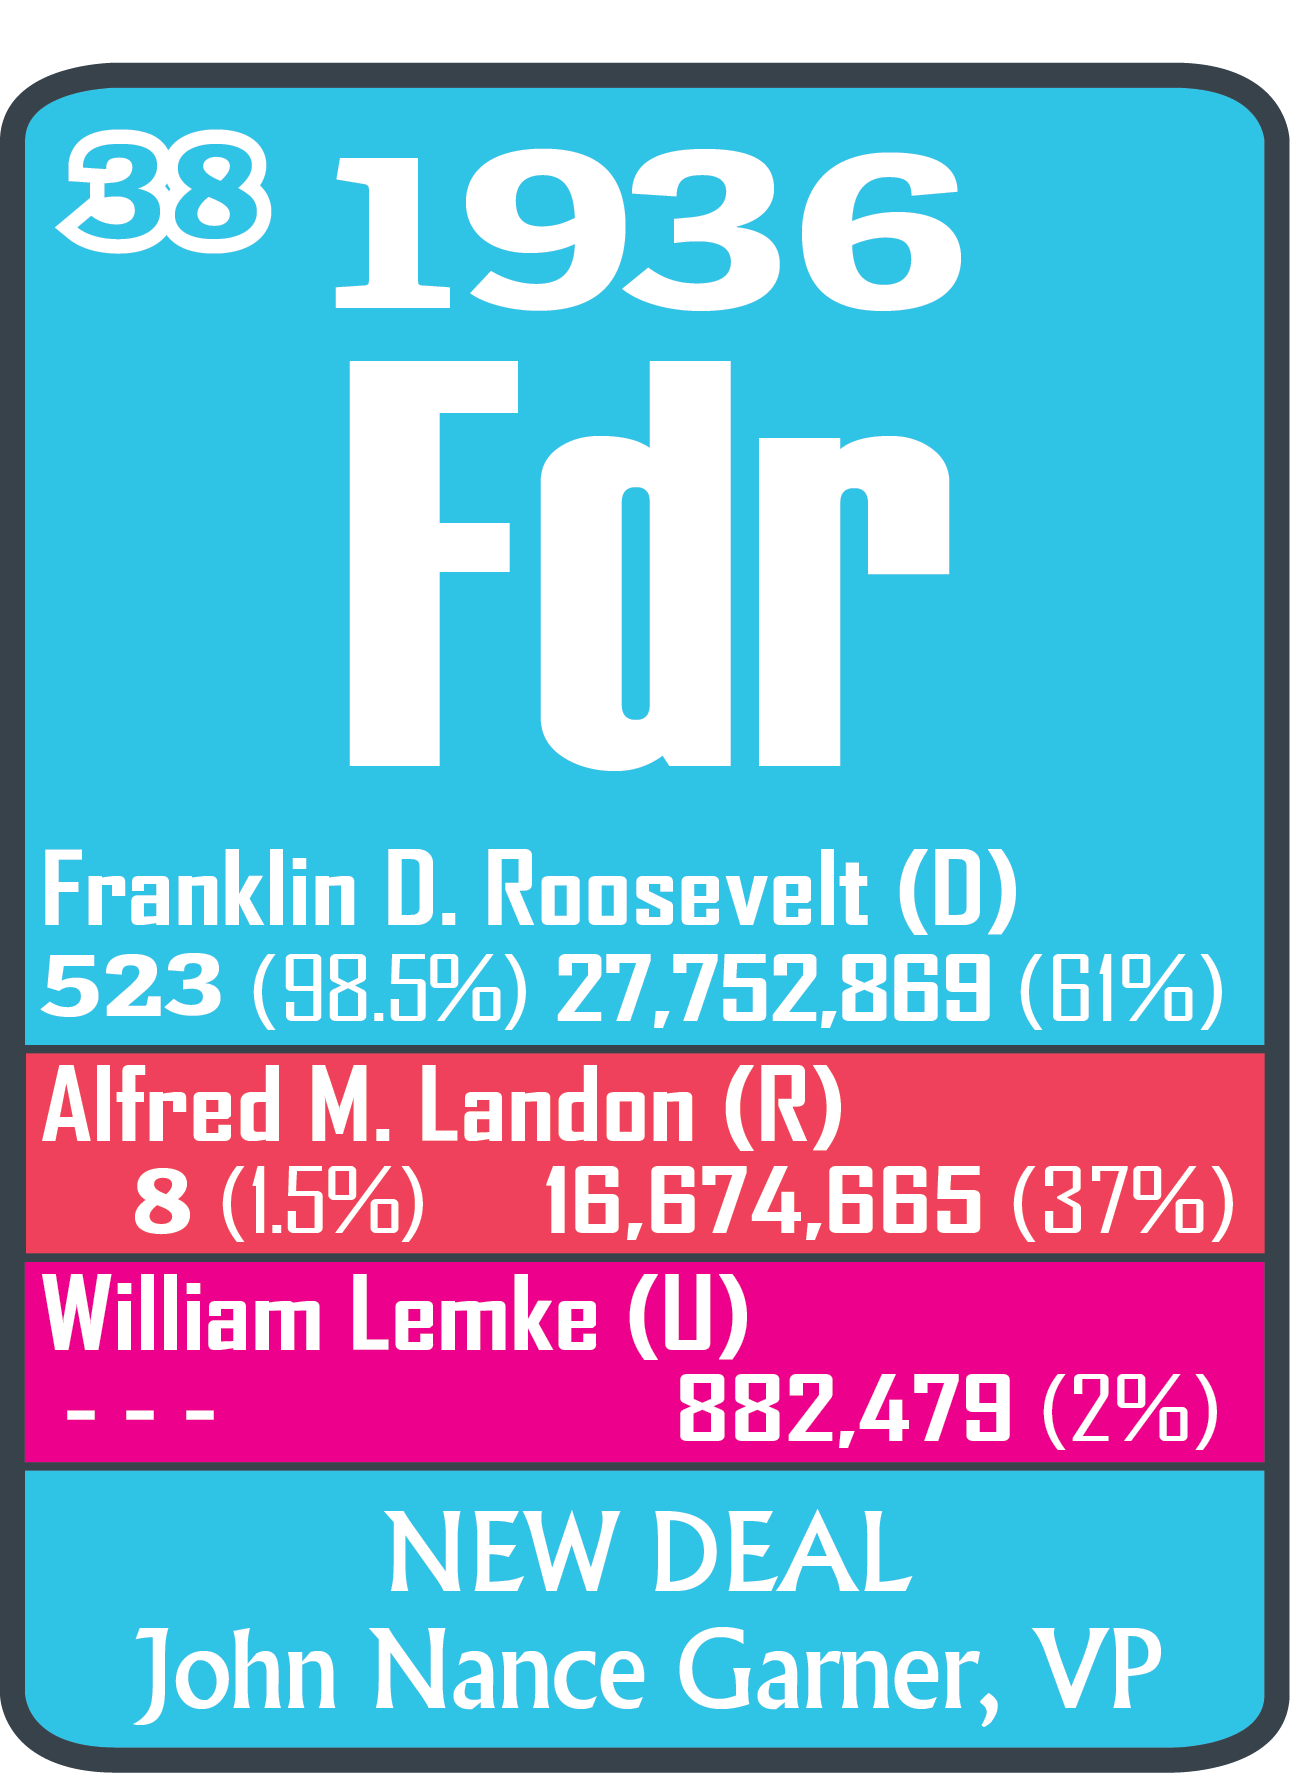 an argument in favor of franklin roosevelts new deal program The political agenda that franklin d roosevelt brought to his first administration ran into great hostility from the supreme court, which overturned a number of new deal programs in the first few years.